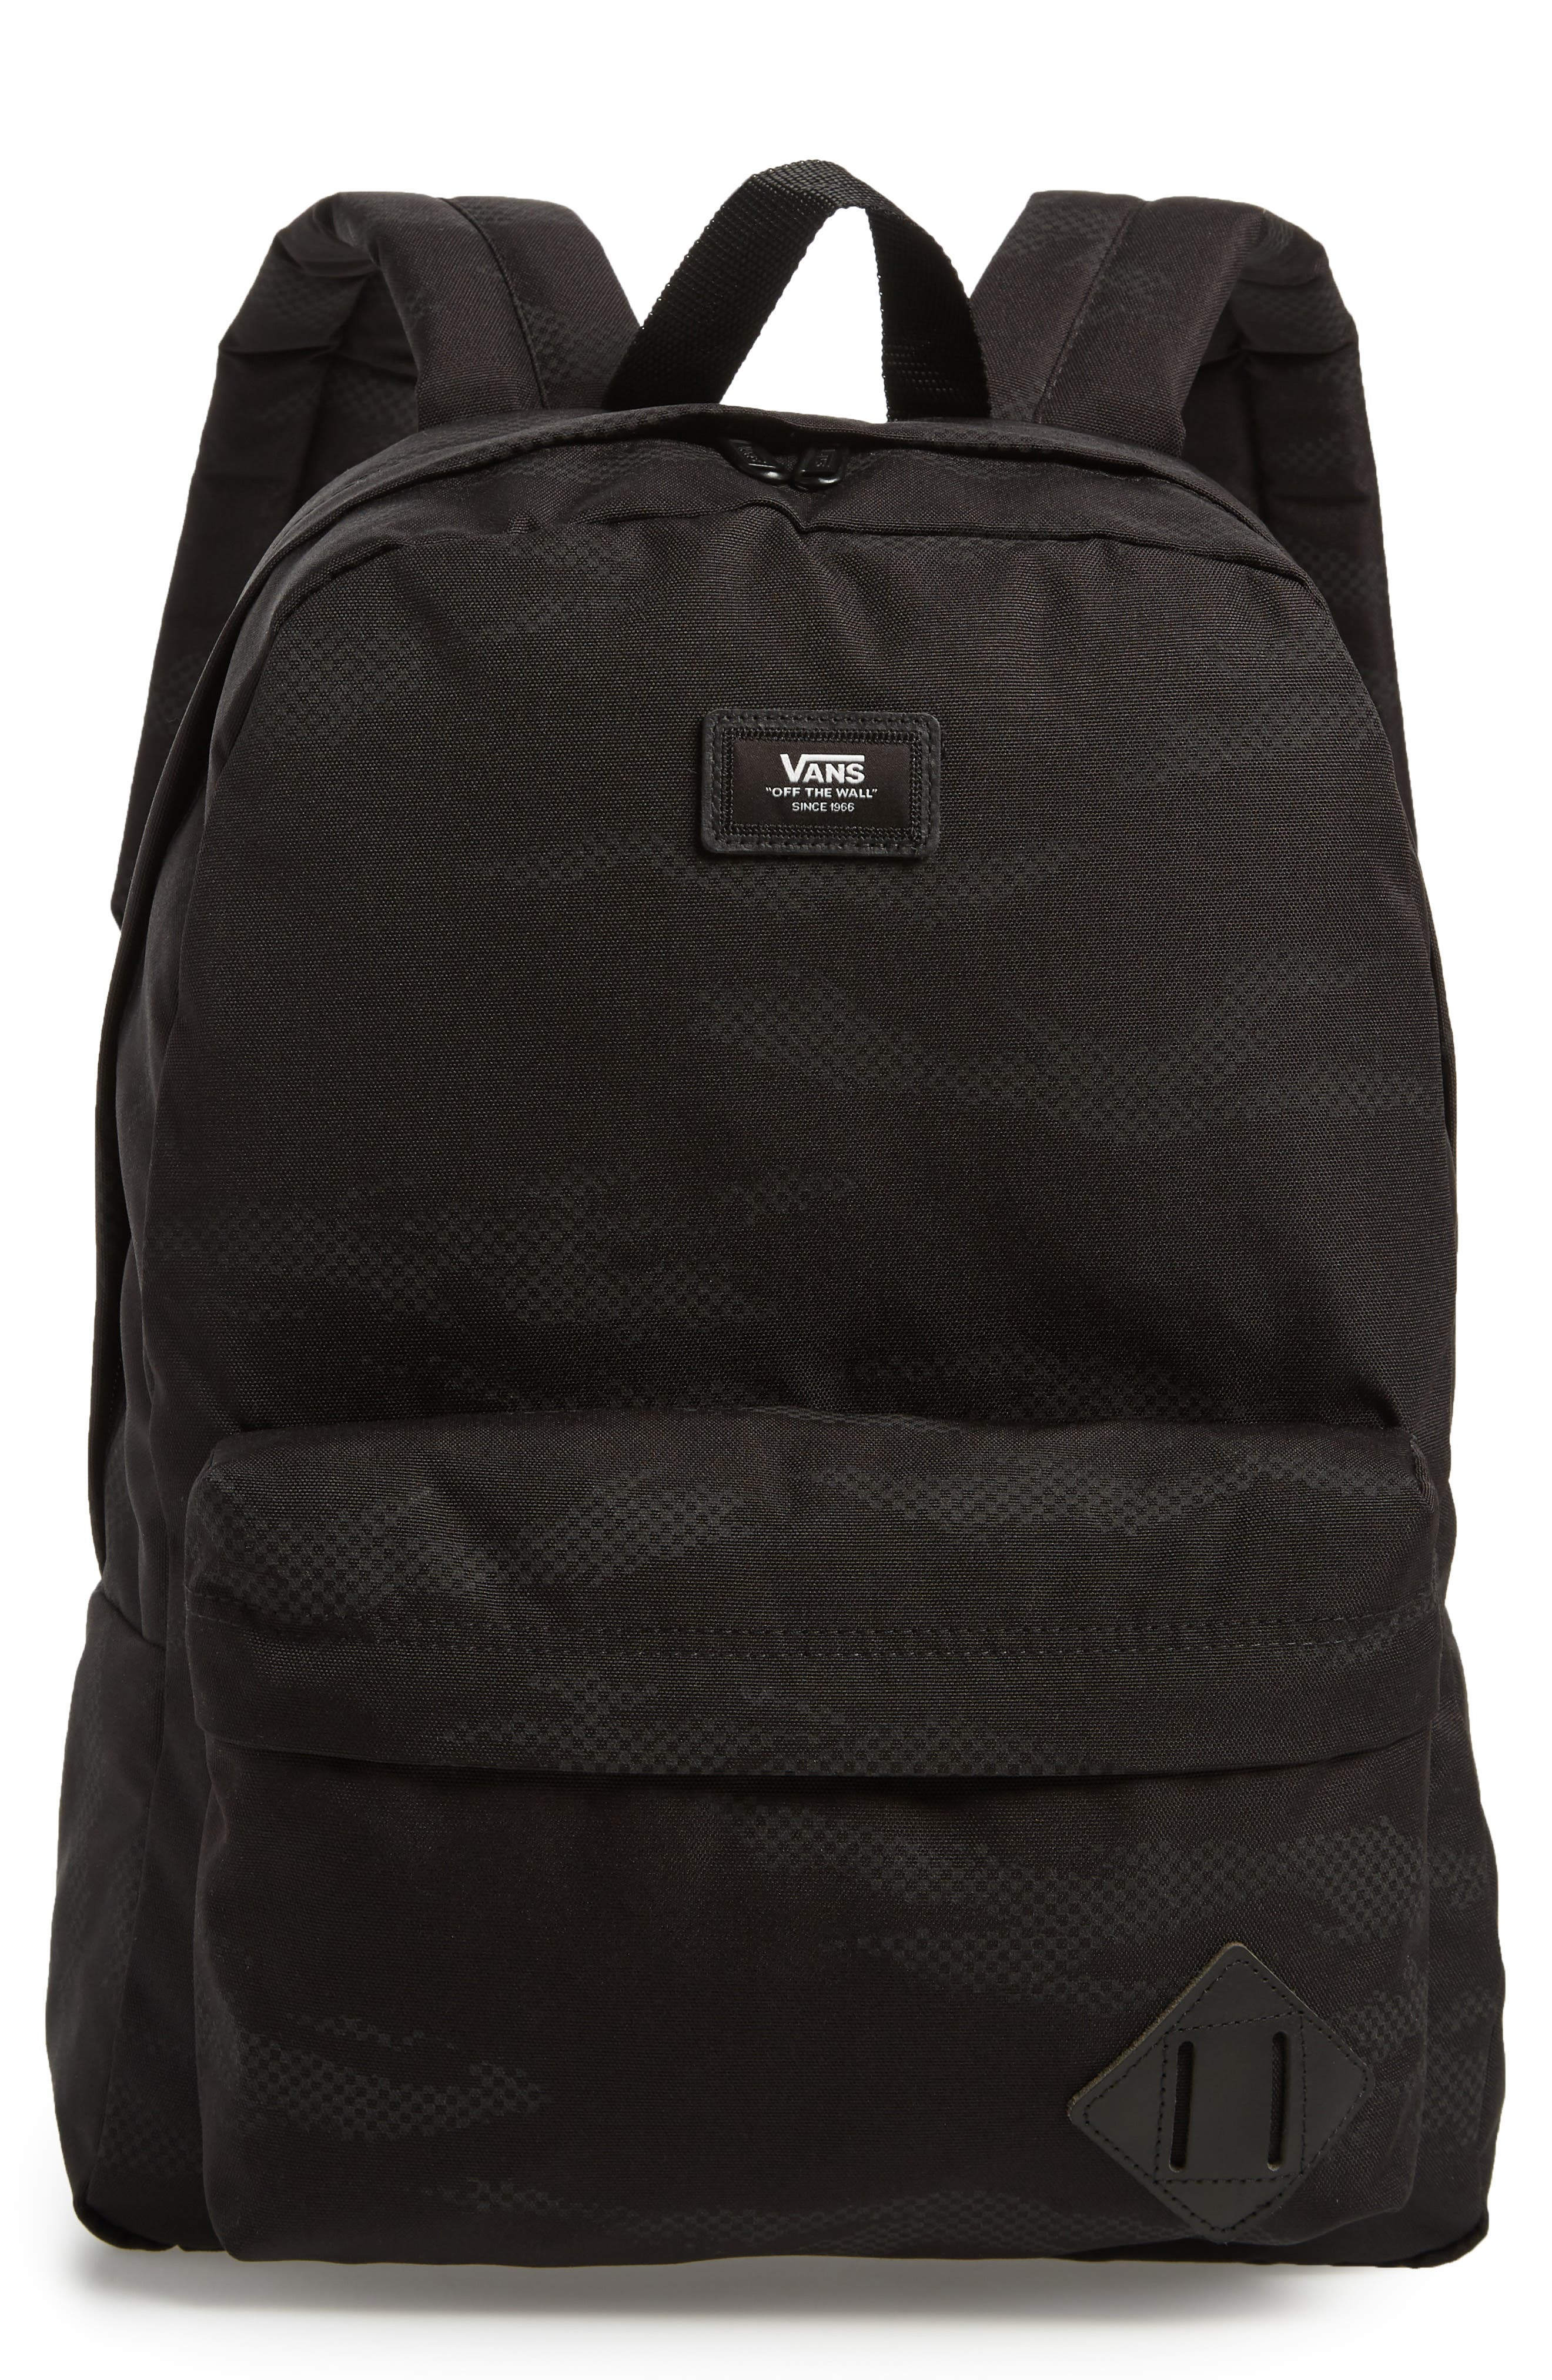 Vans Old Skool Ii Water Repellent Backpack - Black